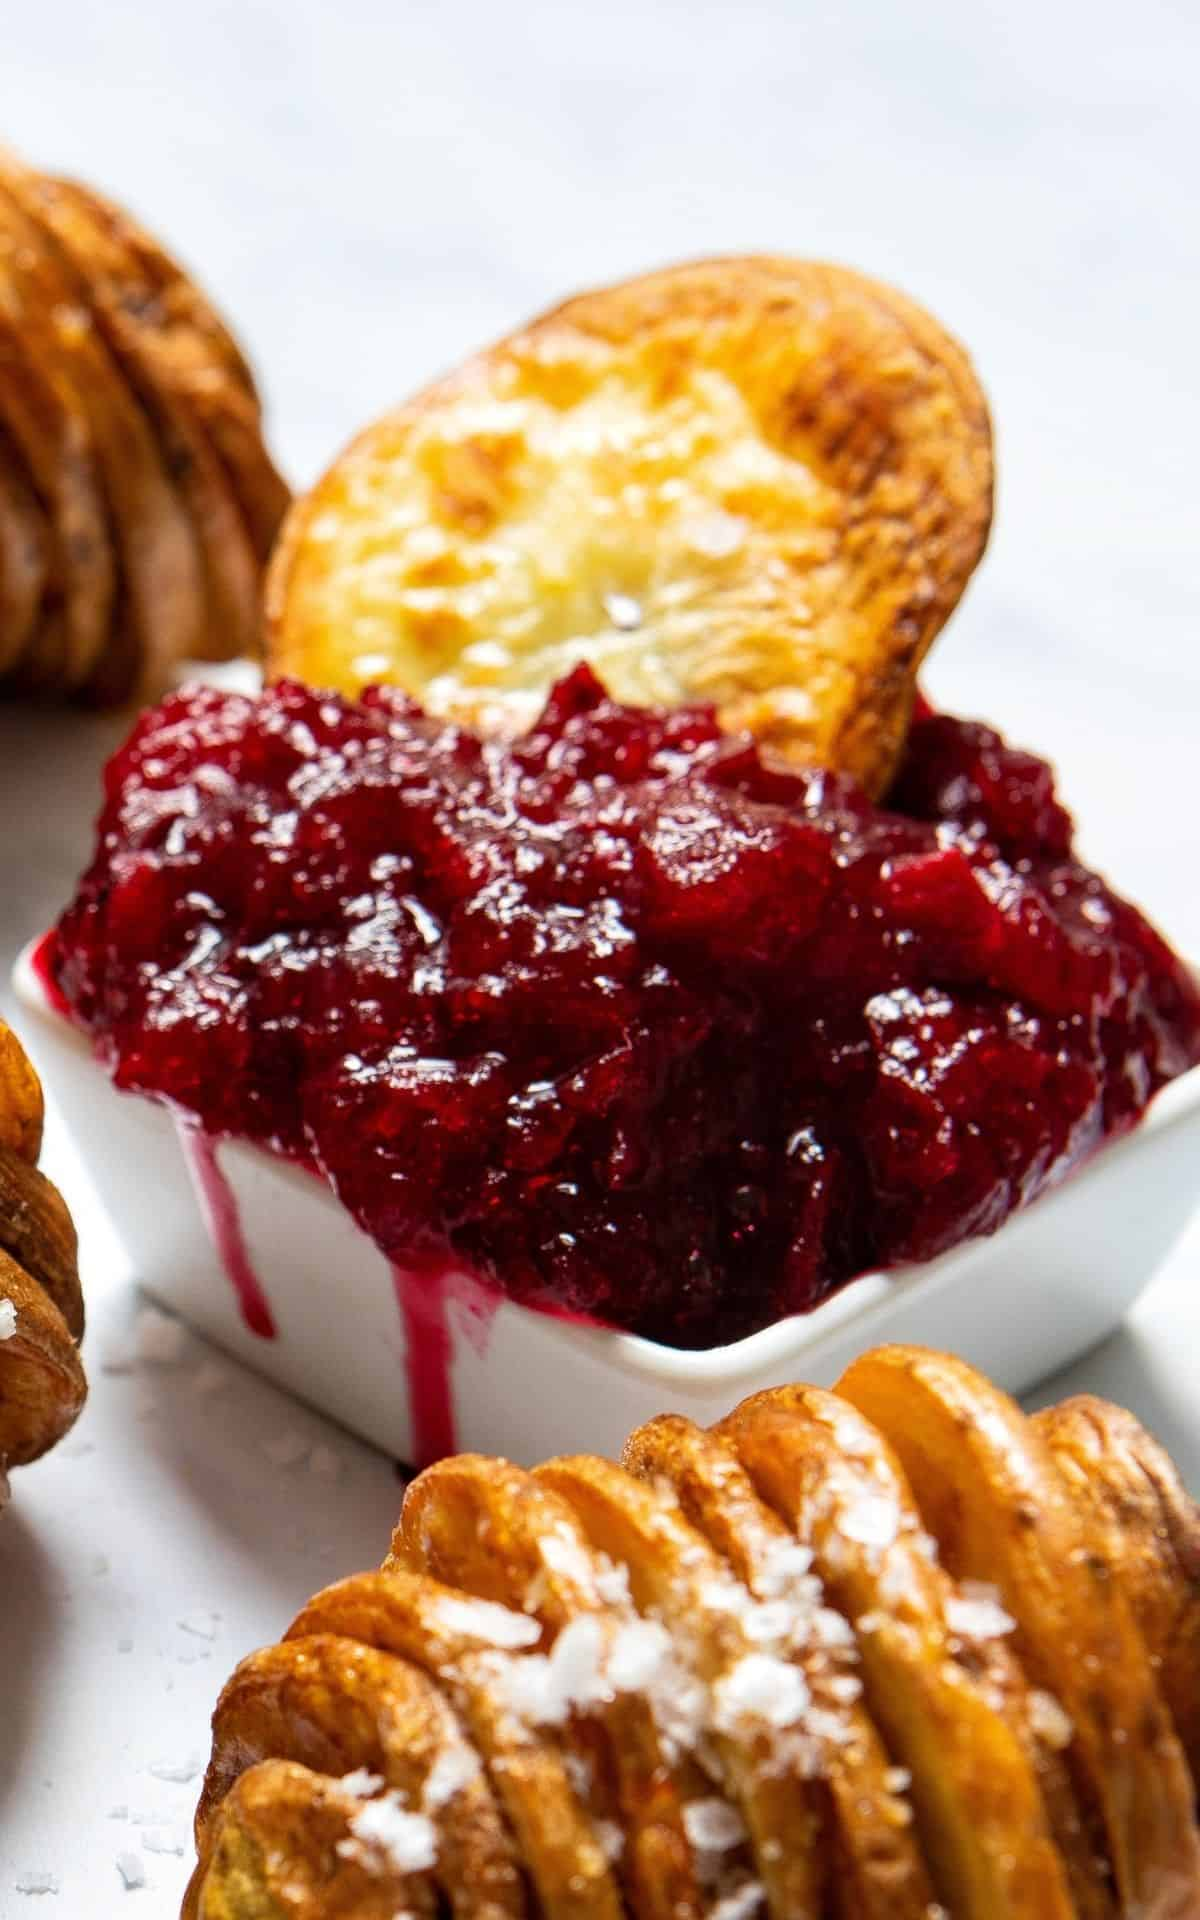 Potato slice dipped in a bowl of homemade sugar-free cranberry sauce.